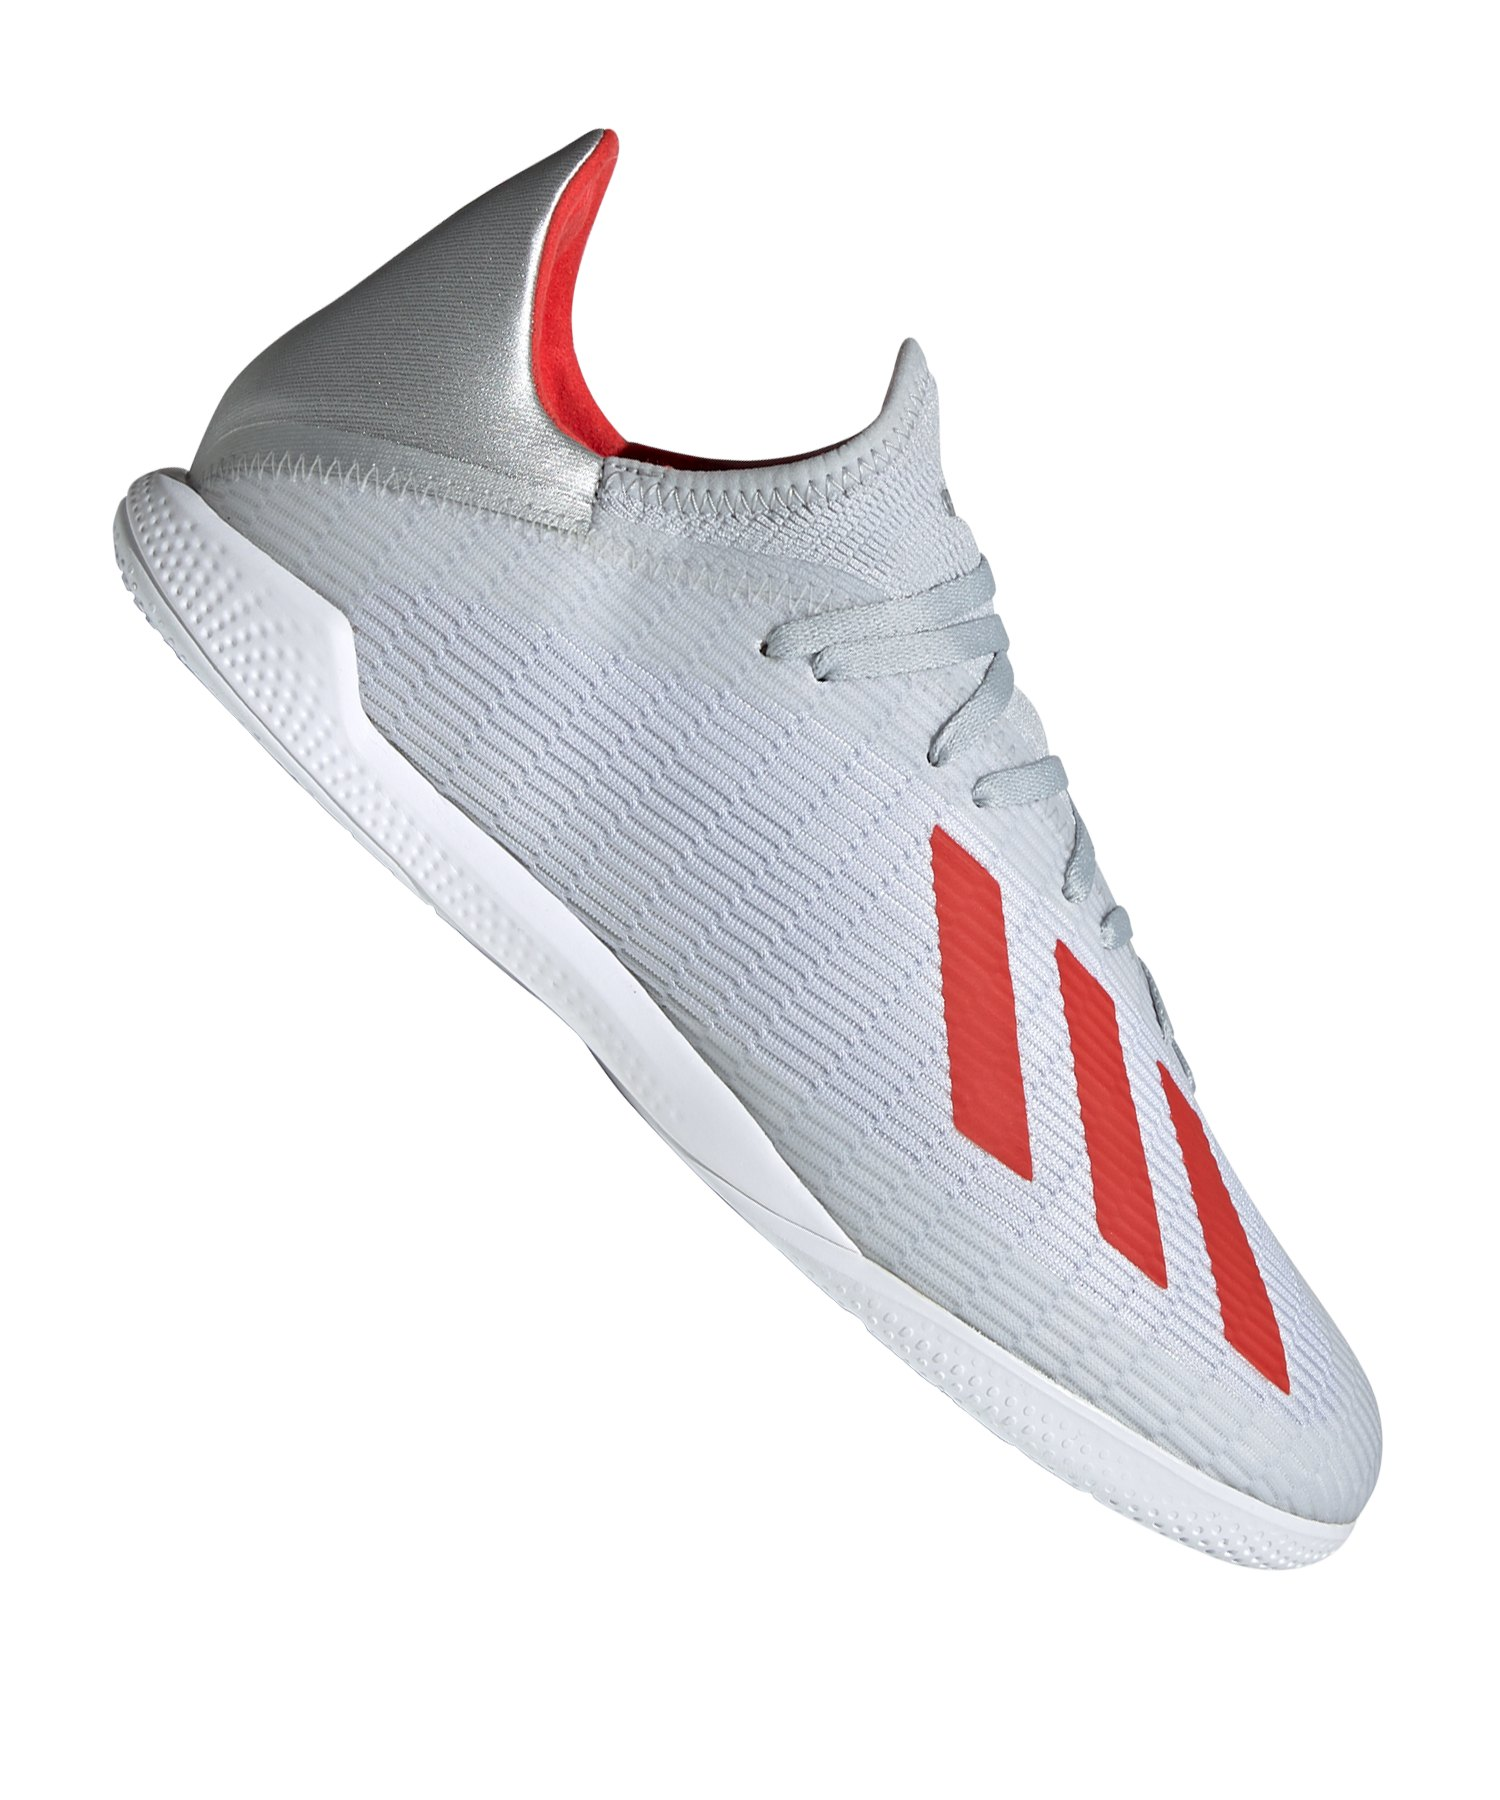 Adidas X 19 3 In Halle Silber Rot